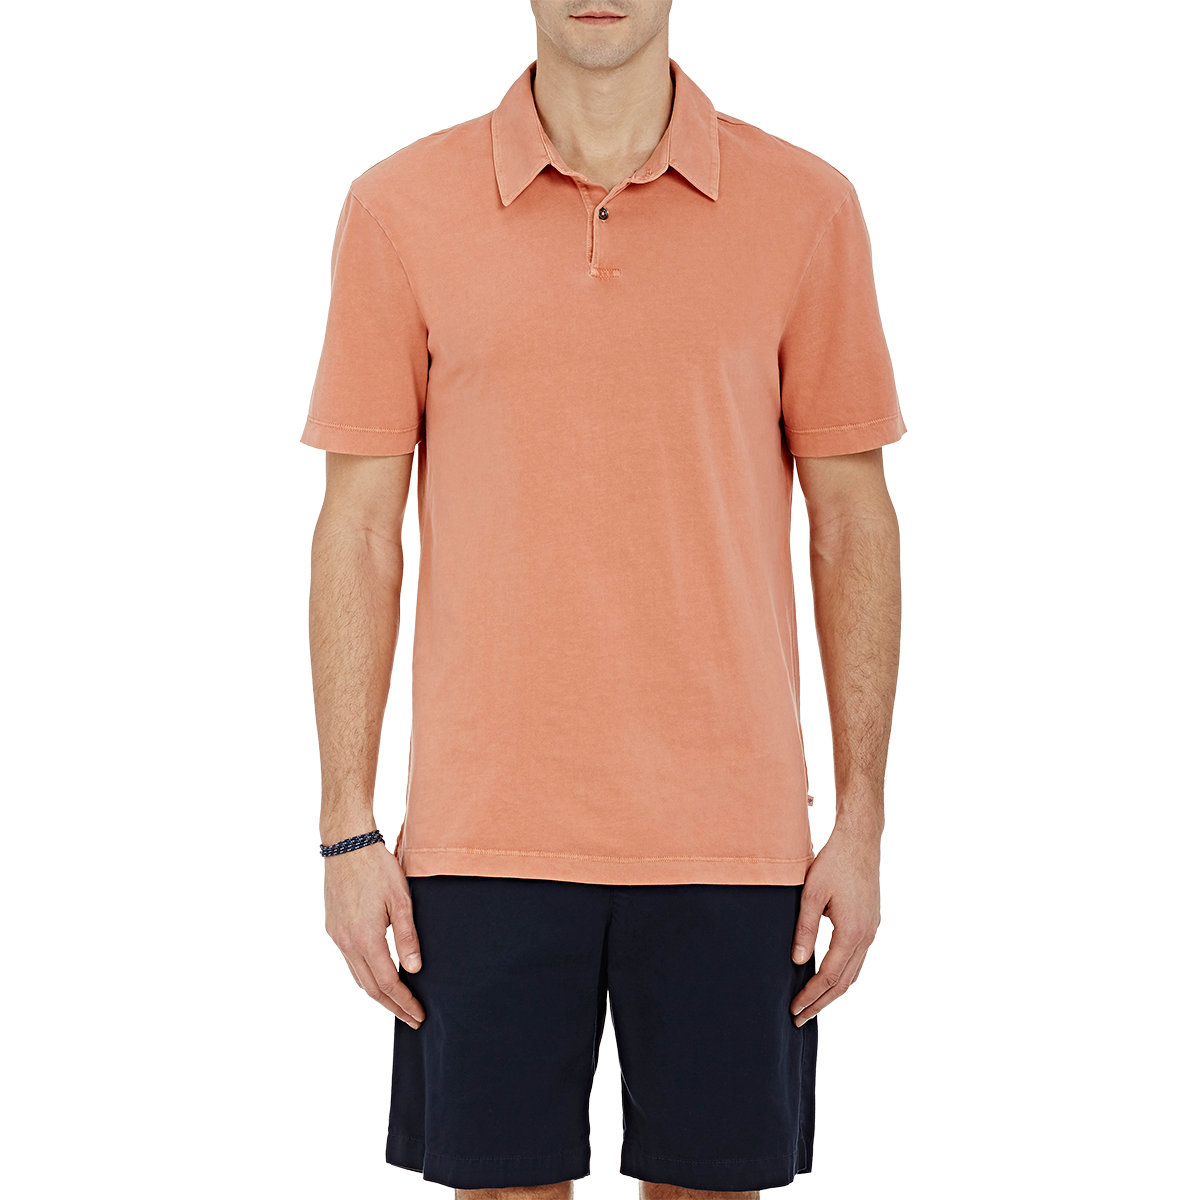 Lyst james perse jersey polo shirt in orange for men for Mens orange polo shirt